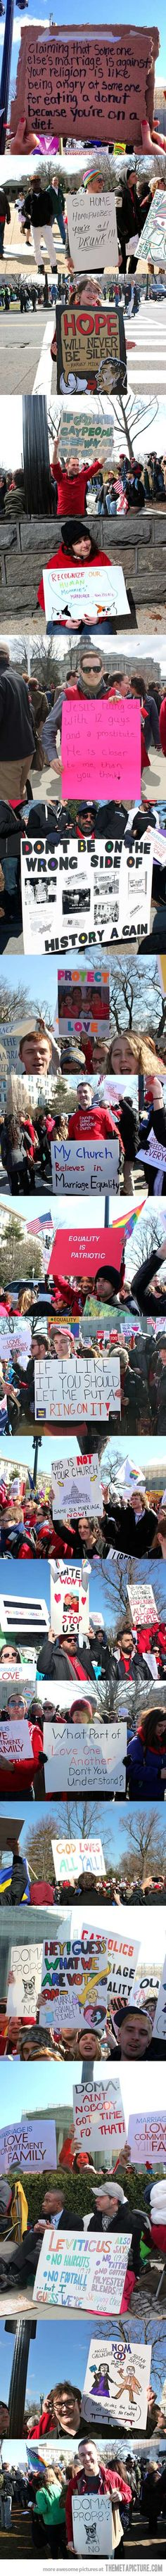 Best signs against anti-gay marriage laws…